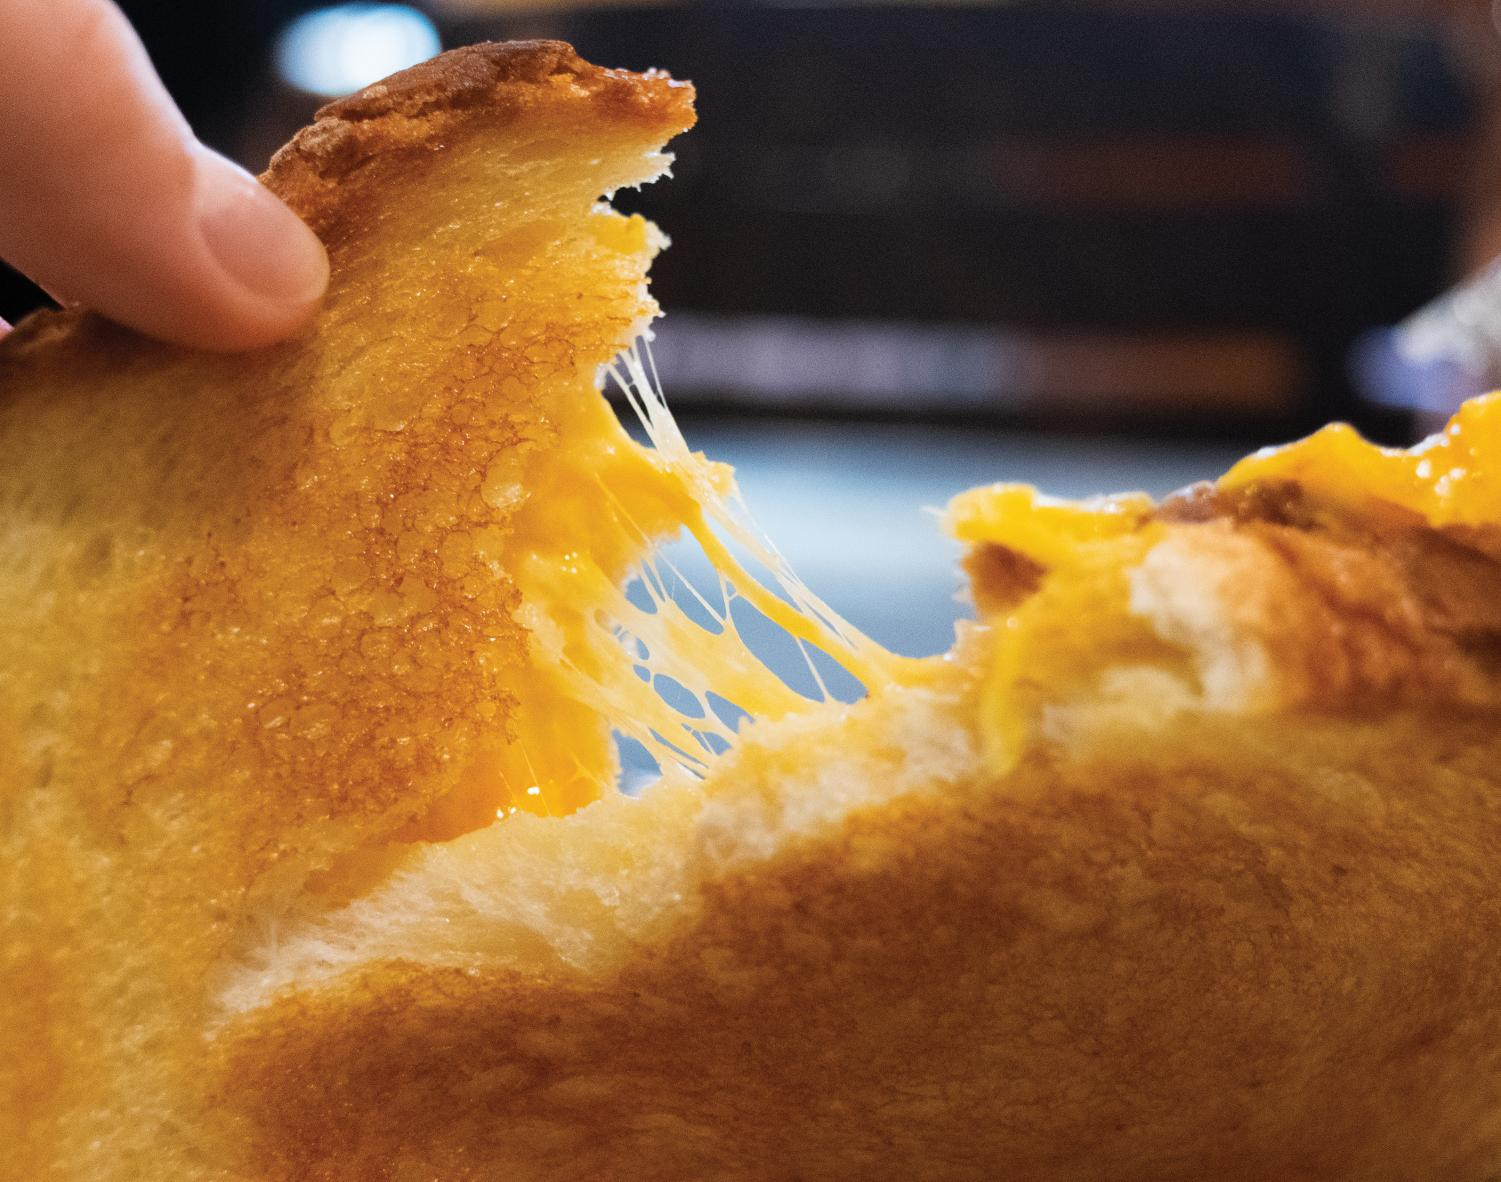 For some, grilled cheese served as a childhood staple that could be varied from meal to meal.